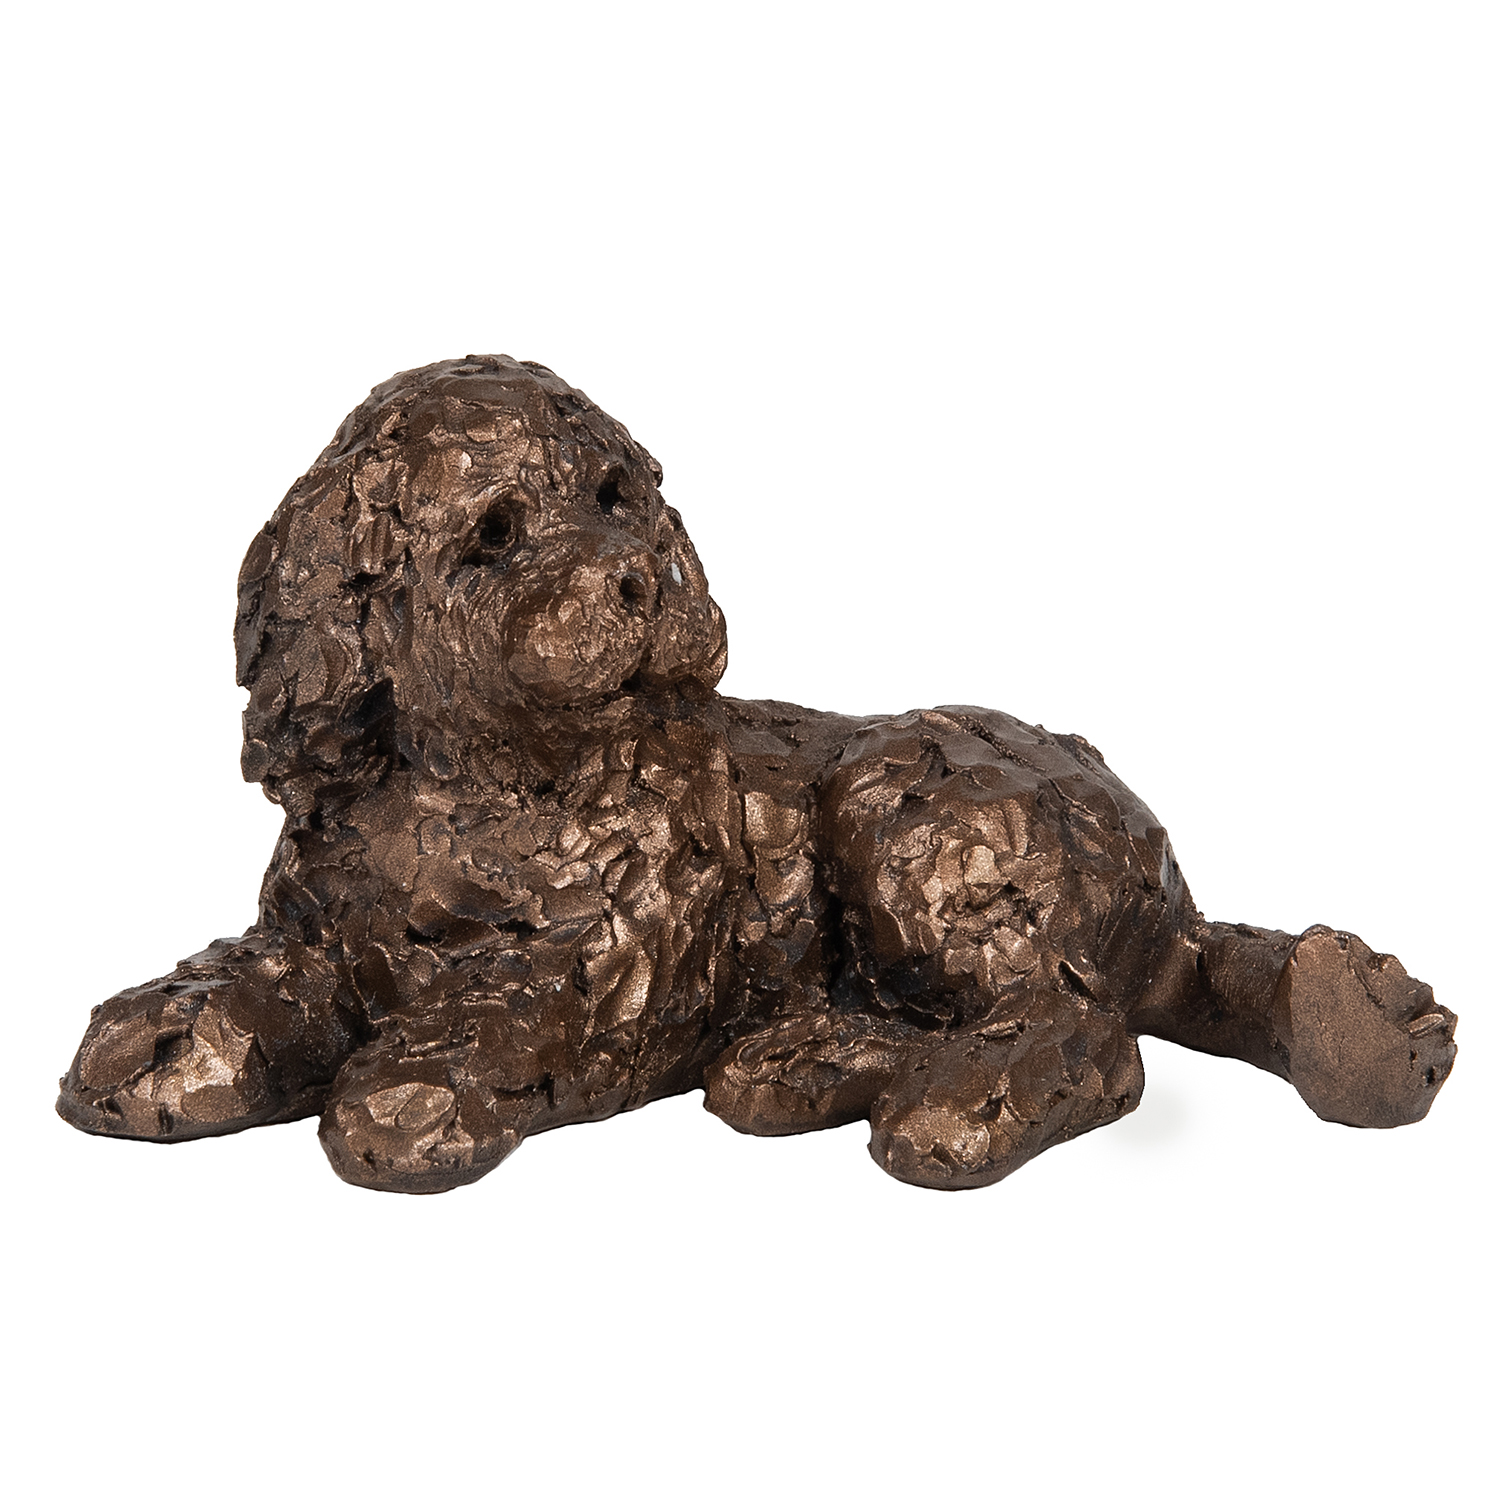 Frith Sculpture – Pickwick Cockapoo Lying in Bronze Resin in Gift Box